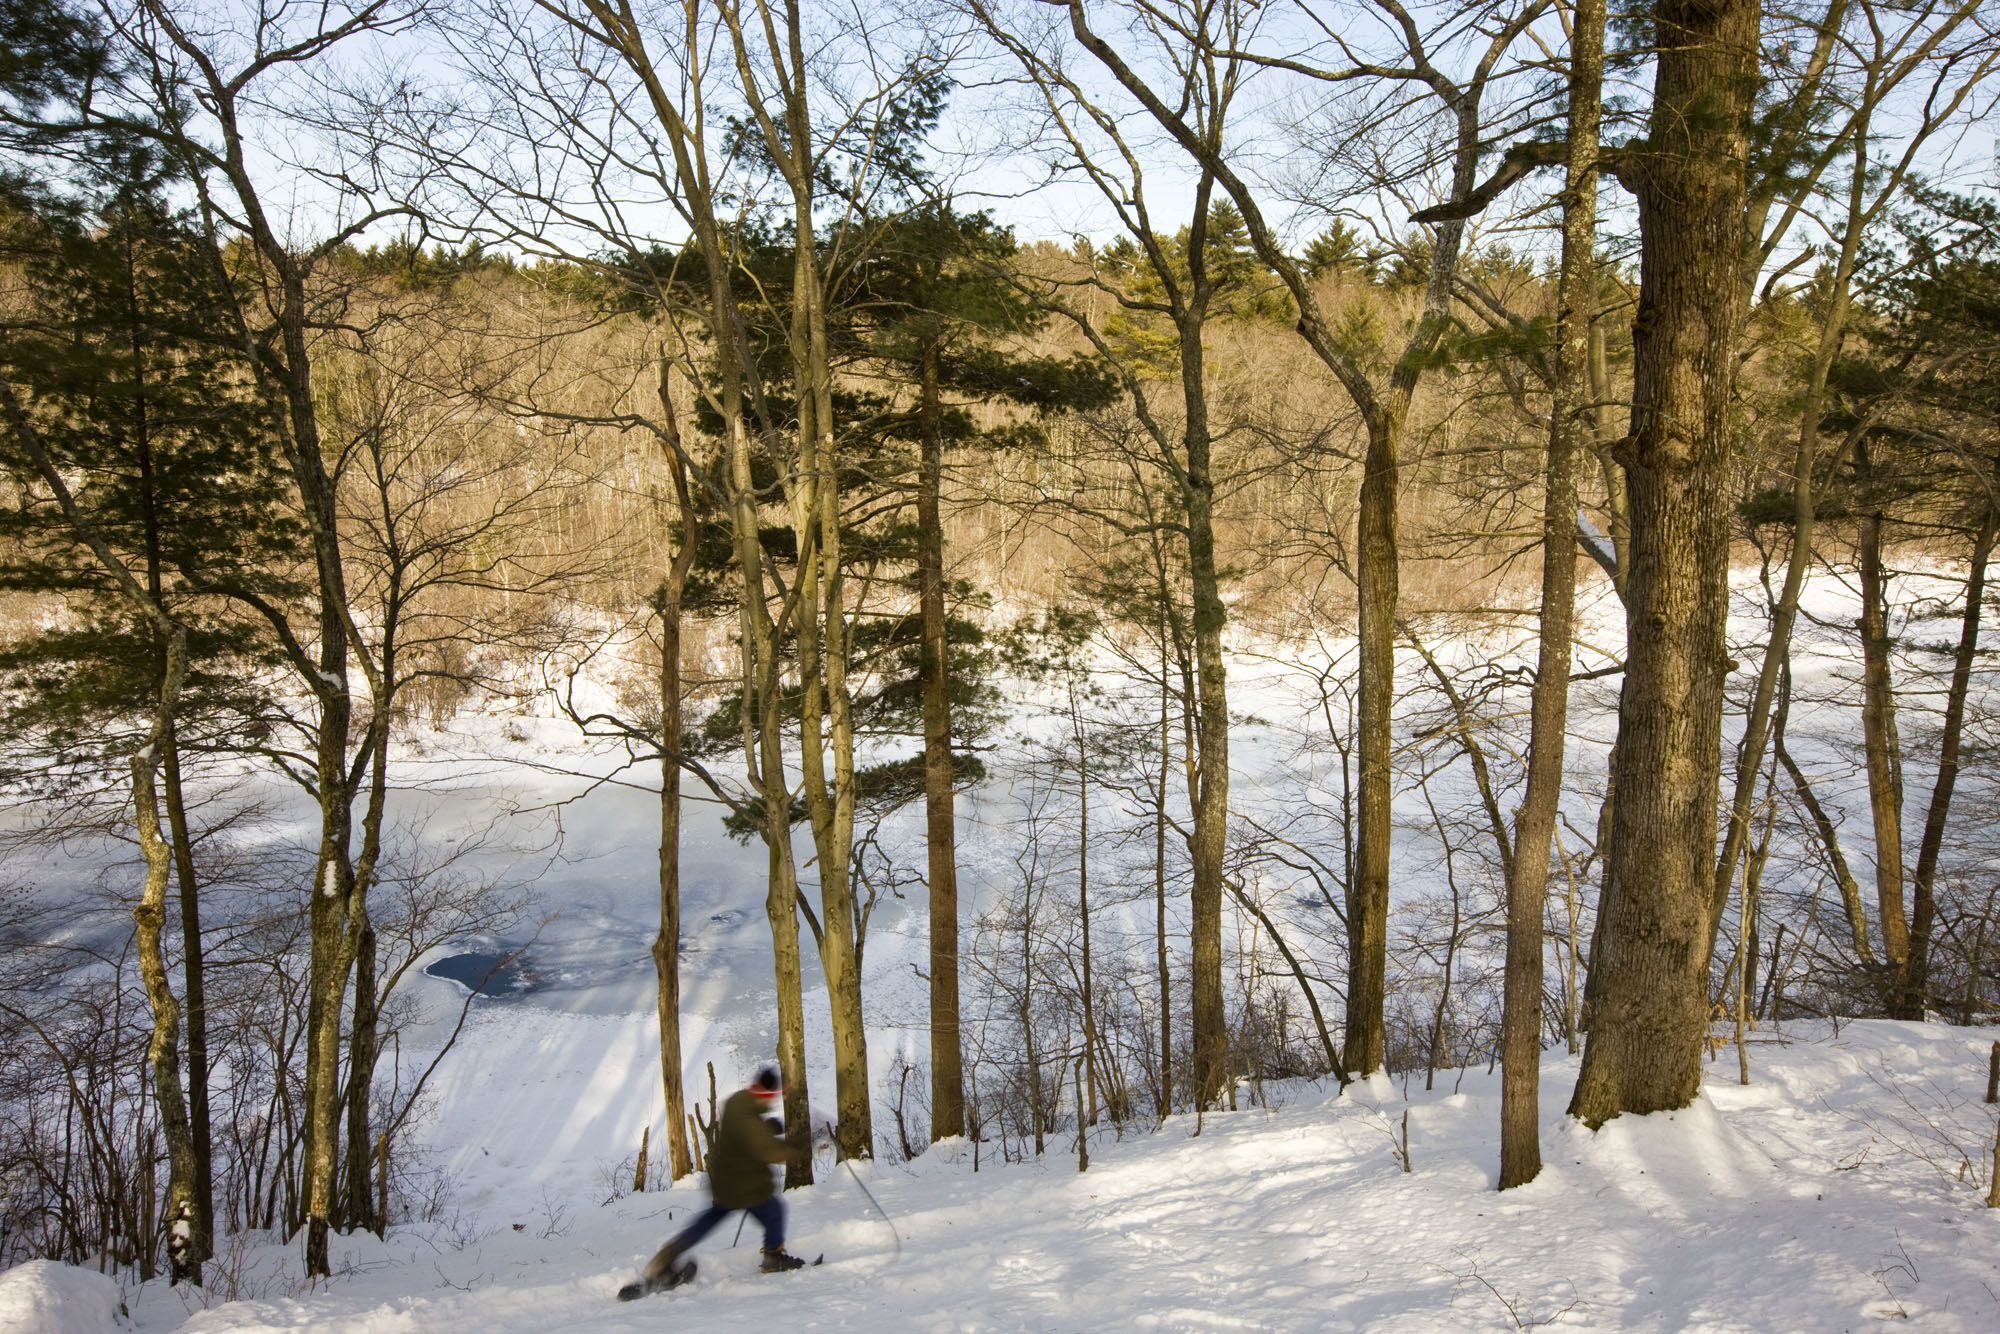 A man snowshoes next to the Indan Head River at the Tucker Preserve in Pembroke, Massachusetts.  Wildlands Trust of Southeastern Massachusetts.